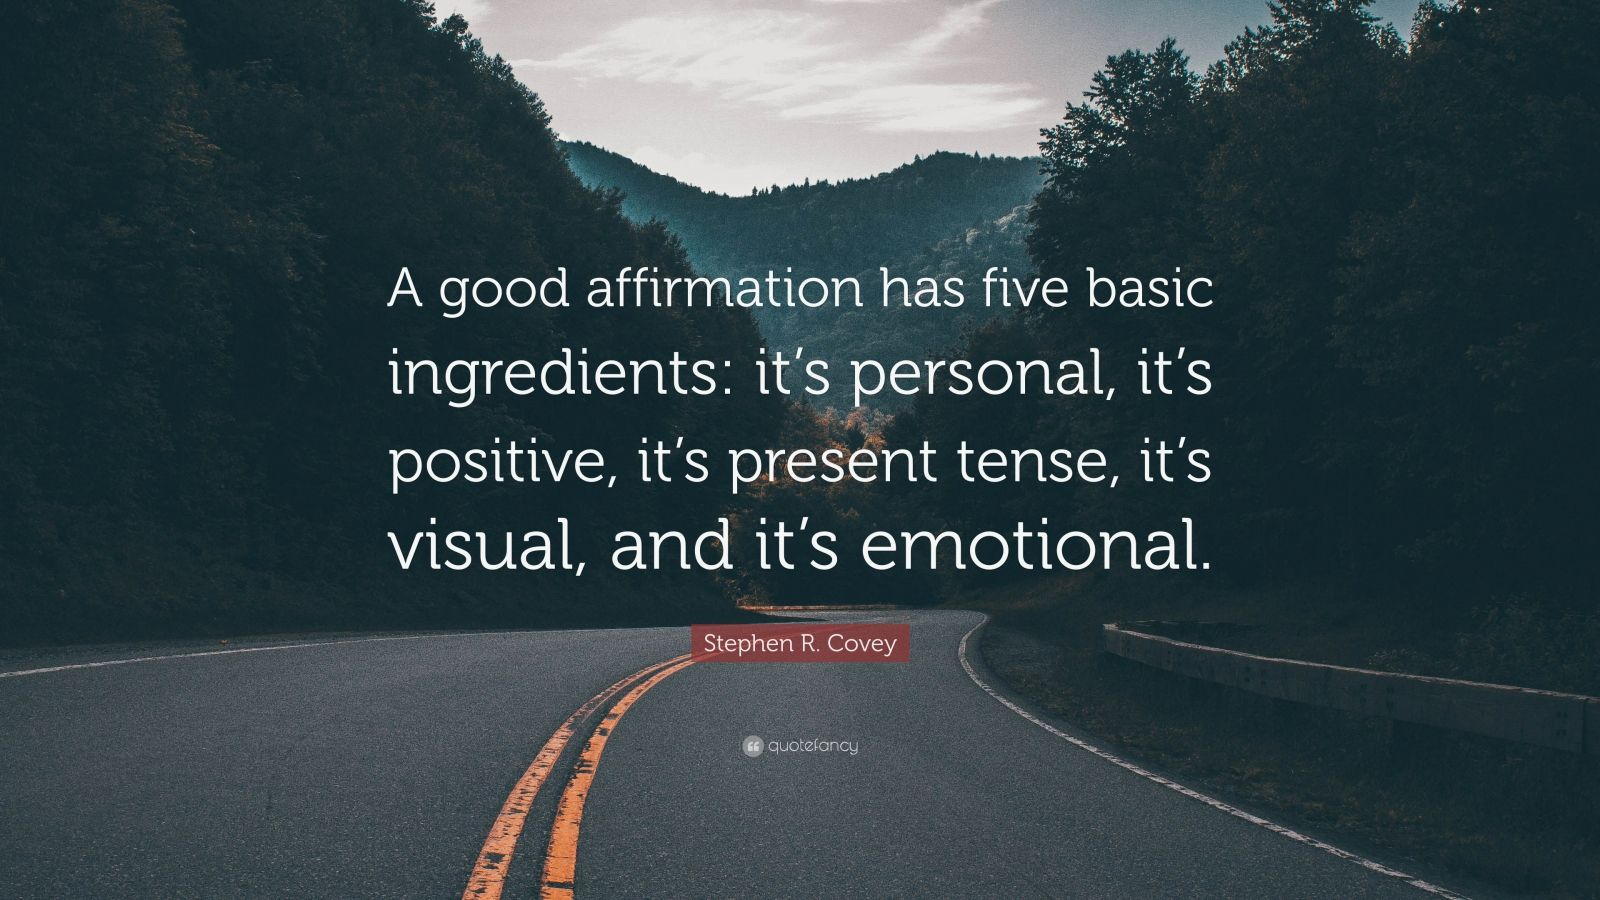 """Stephen R. Covey Quote: """"A good affirmation has five basic ingredients: it's personal, it's positive, it's present tense, it's visual, and it's emotional."""""""